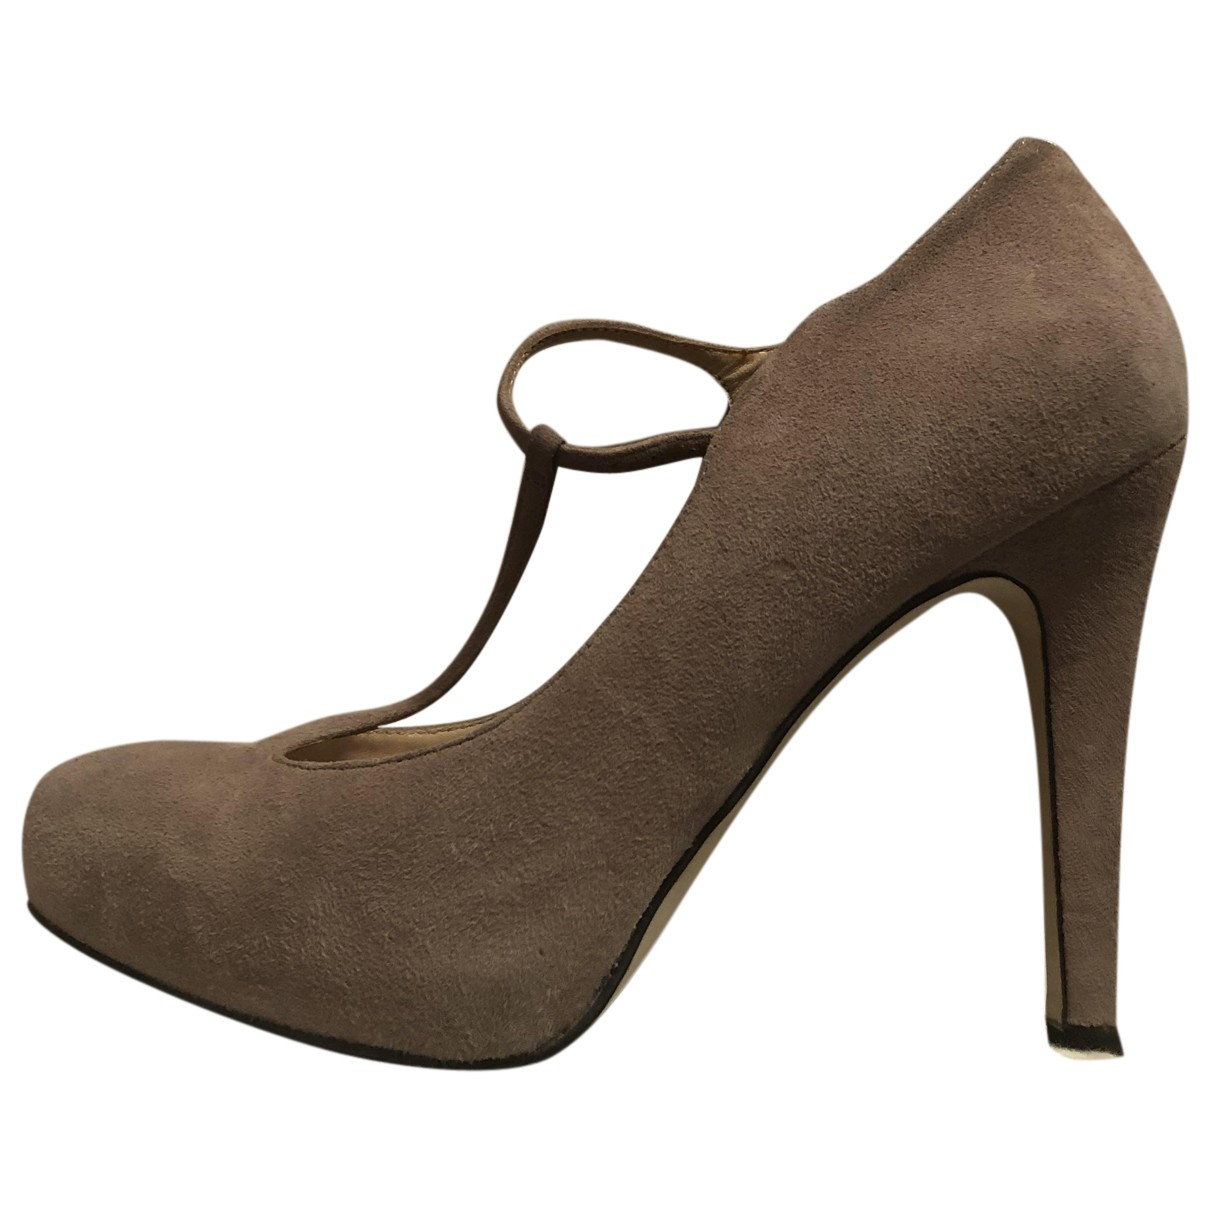 Guess N Beige Suede Heels for Women 40 IT